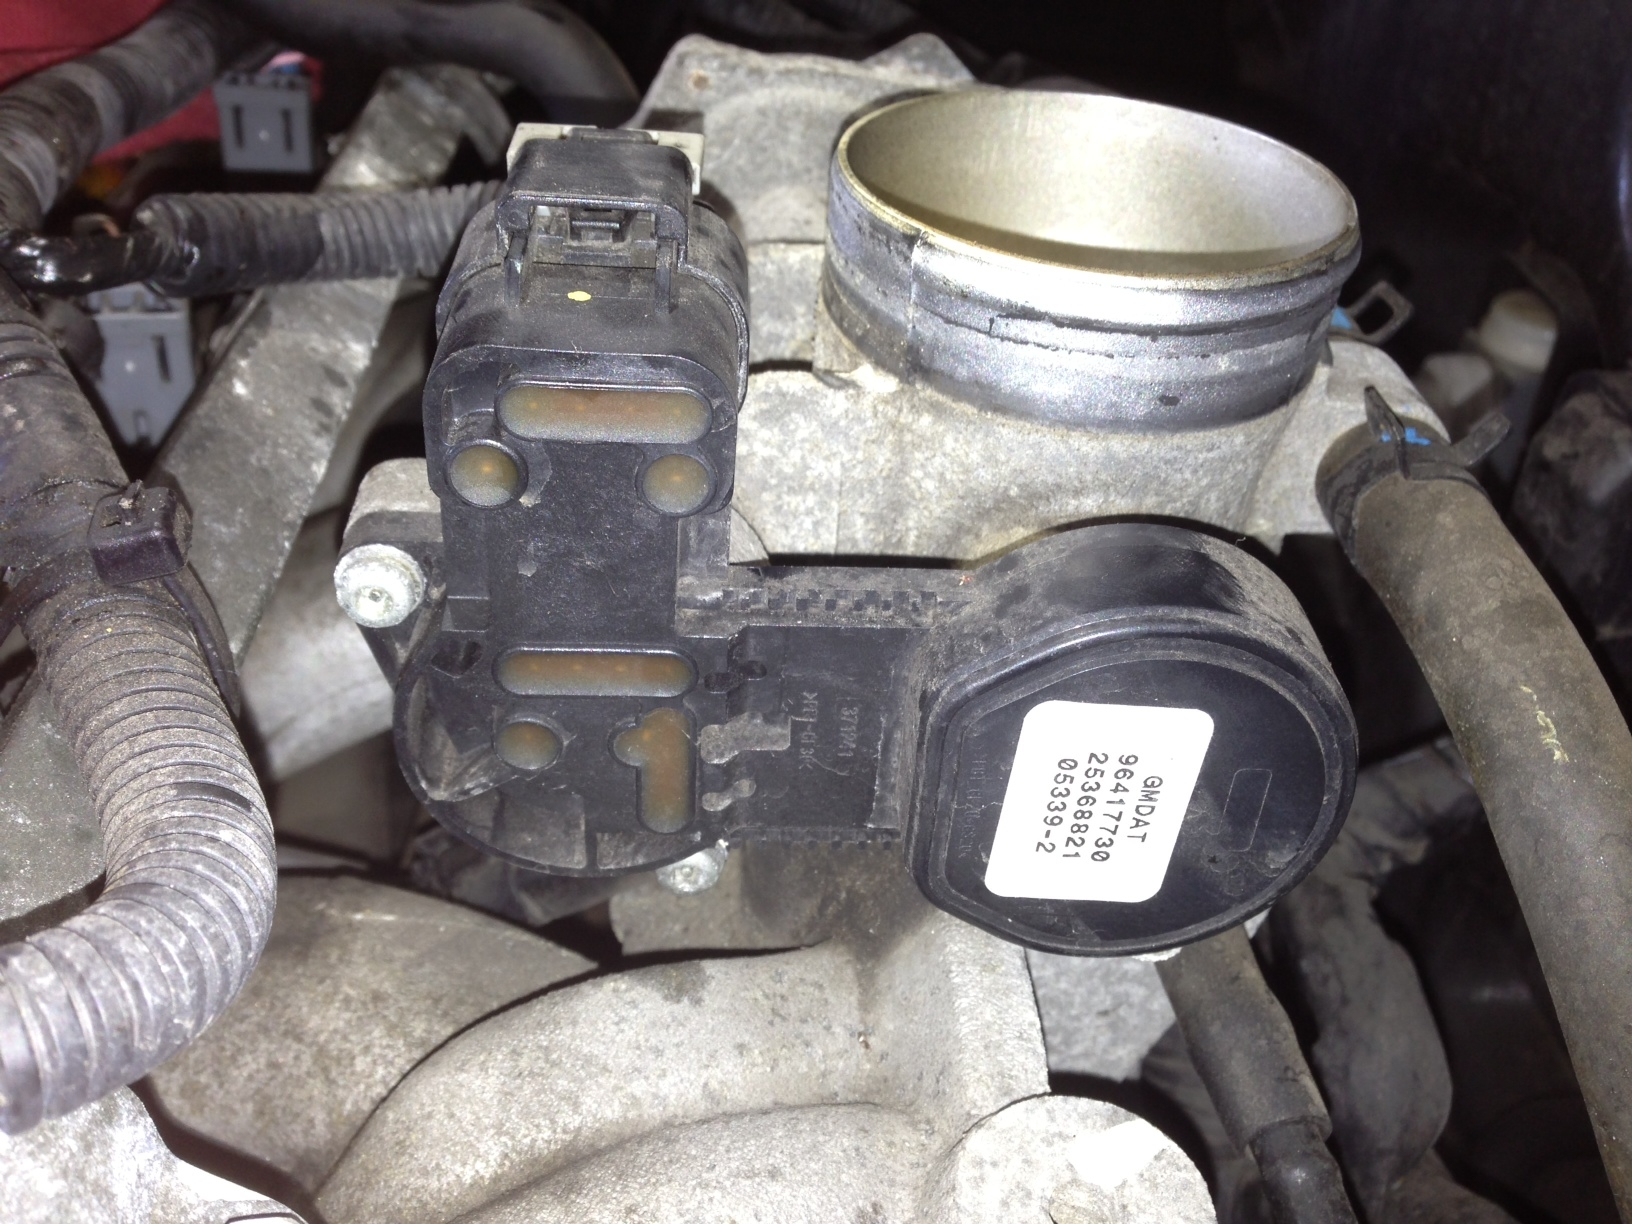 Audi A4 B5 Fuel Filter Replacementbuy Replacement Parts Chevy 09 Cobalt Location Free Engine Image For User Manual Download